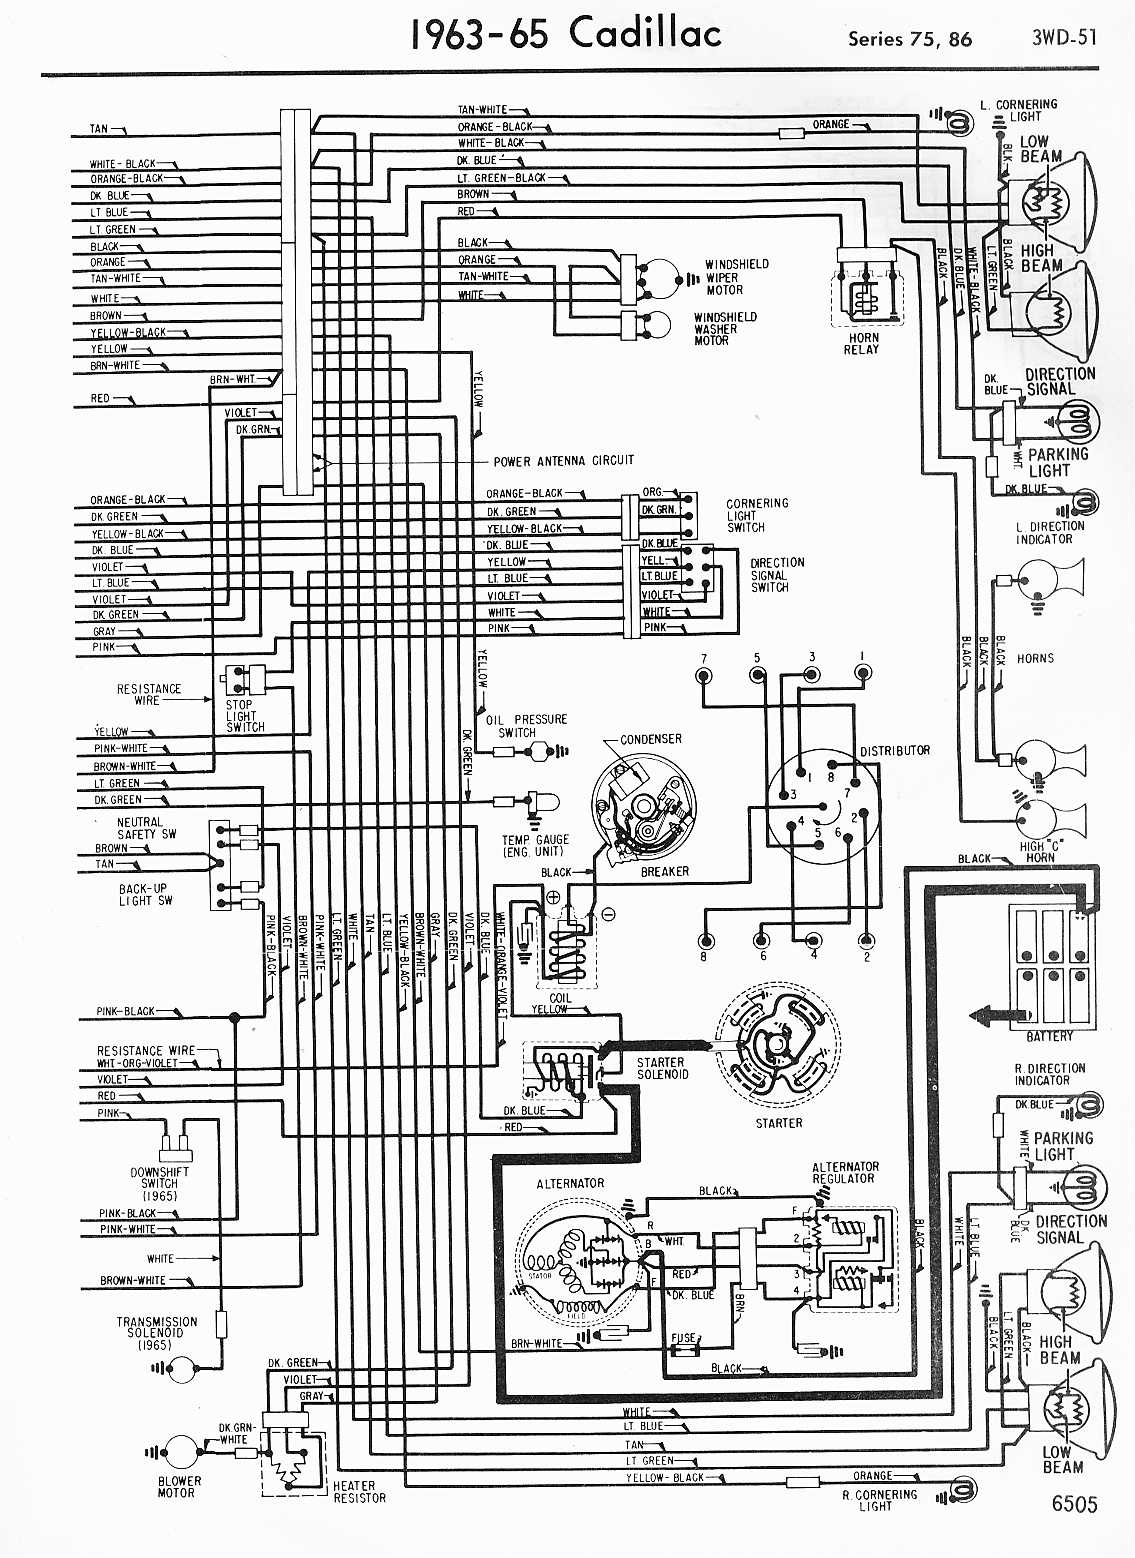 1997 Cadillac Deville Stereo Wiring Diagram Free Download Modern Fuse Box Sts 97 Diagrams Scematic Rh 47 Jessicadonath De 1996